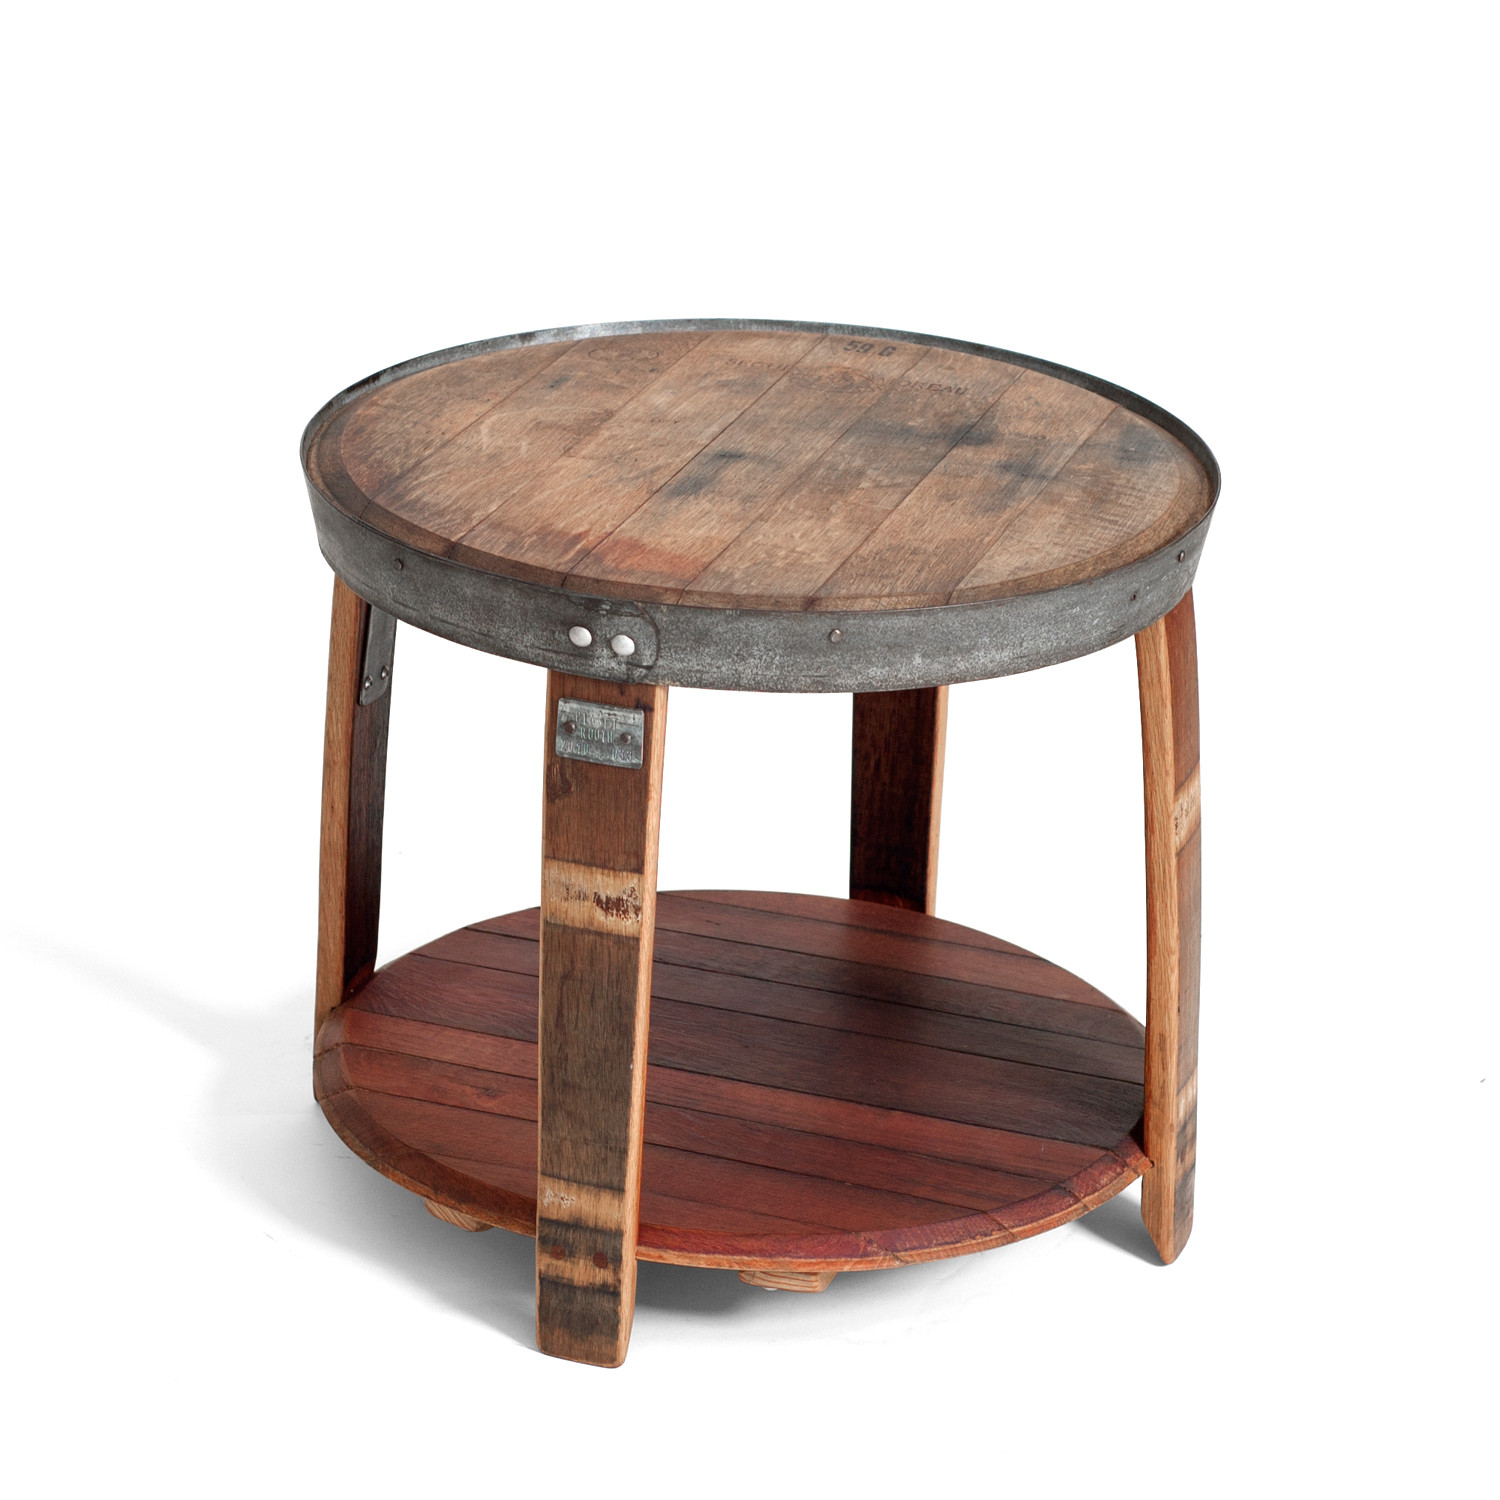 whiskey barrel top end tables barrels wedding pub bar table wine side respond touch accent unique round coffee zane narrow bedside ikea industrial style beautiful tablecloths frog